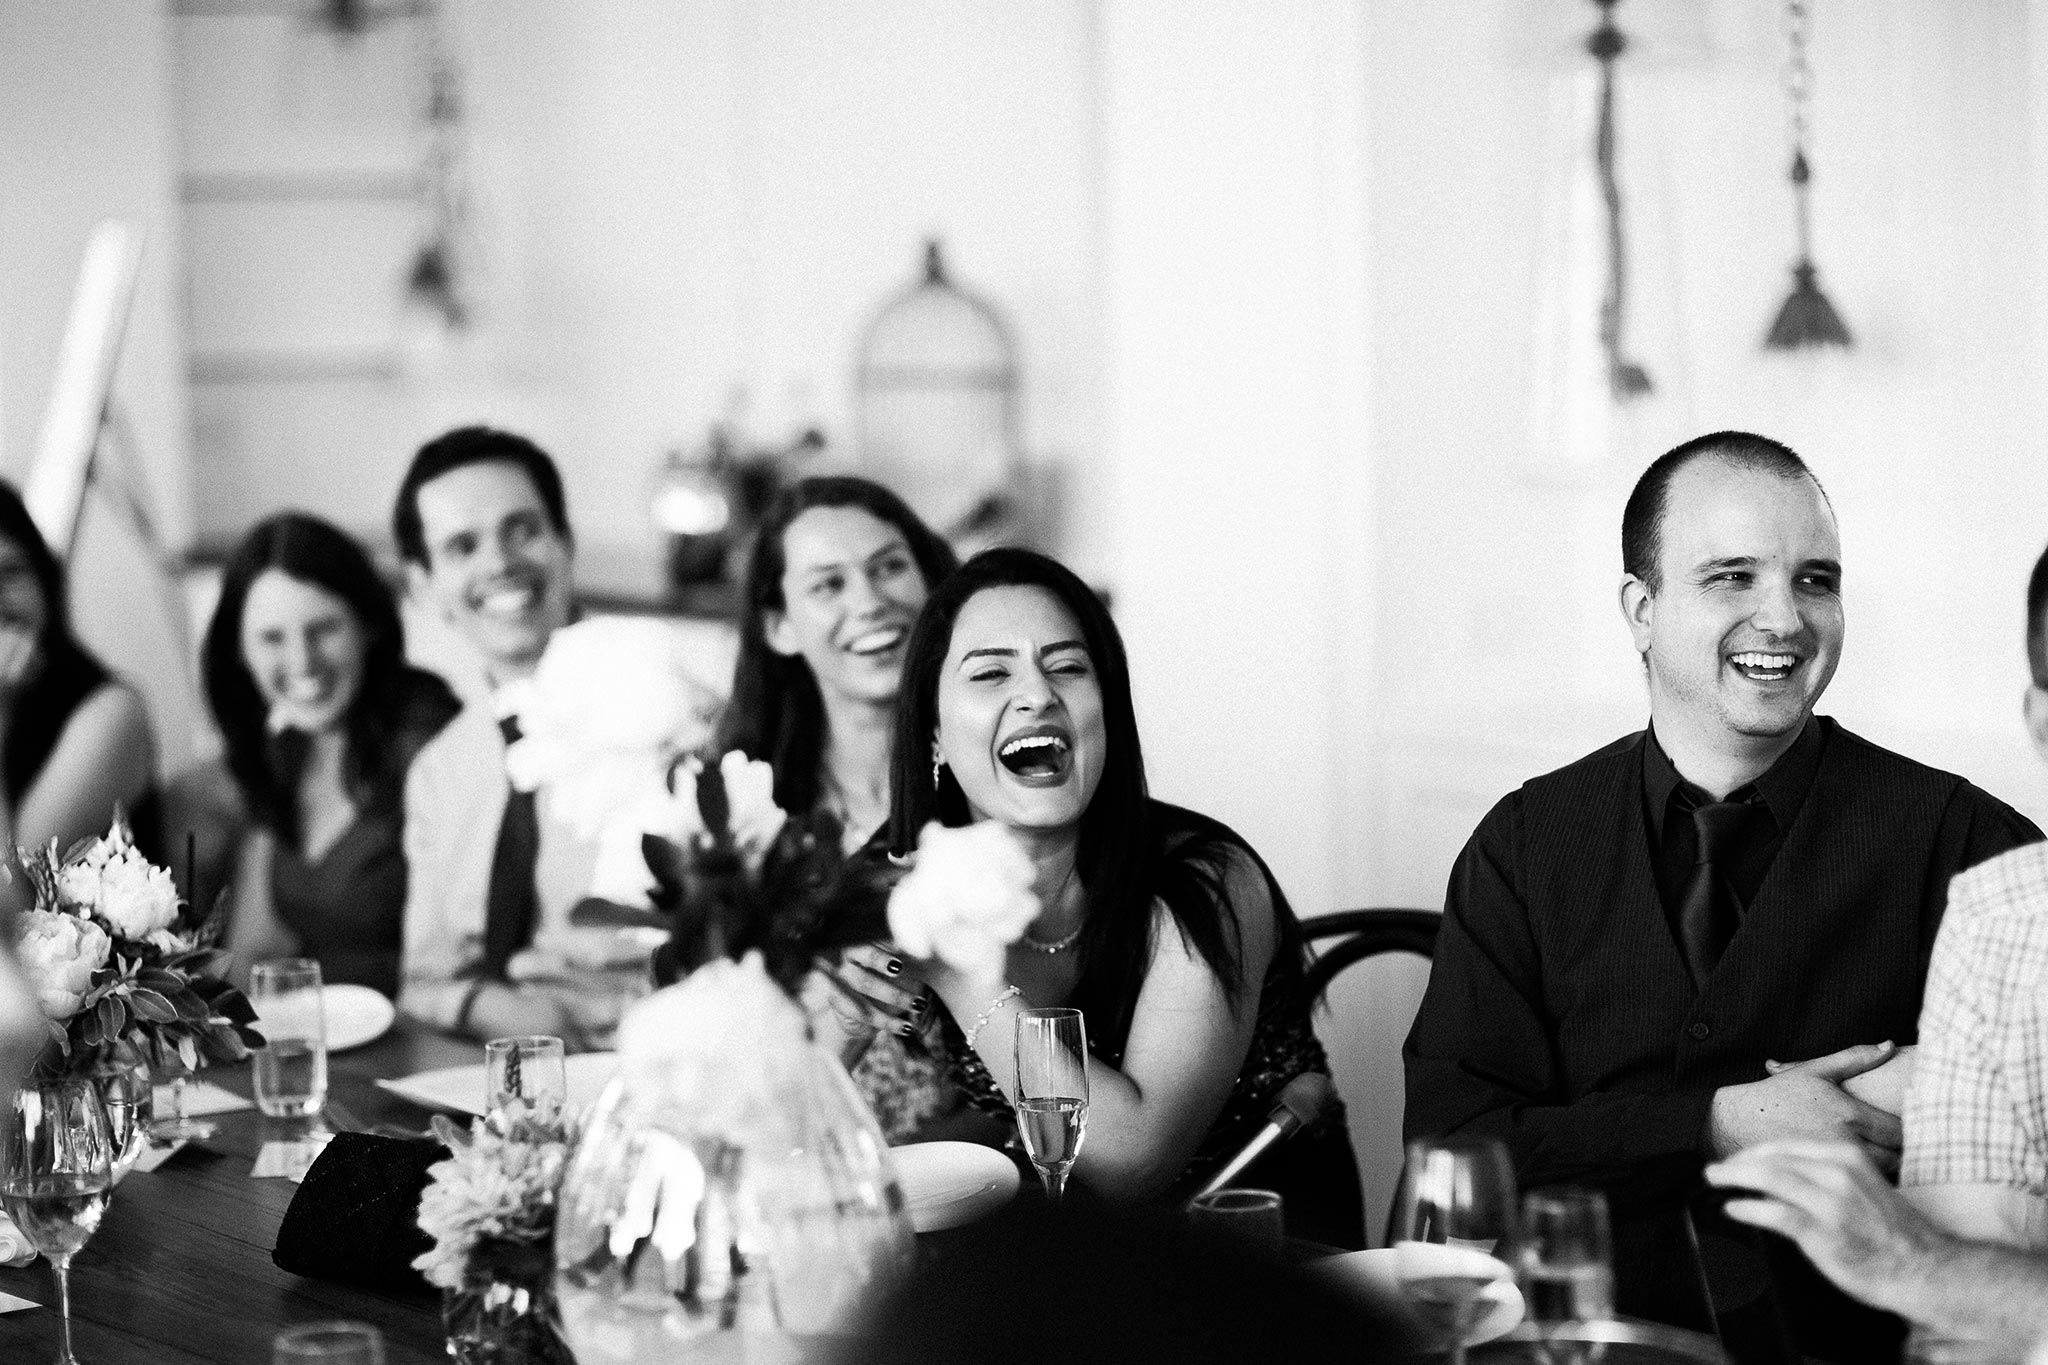 Daylesford-Lake-House-Wedding-Photographer-lunch-reception-guests